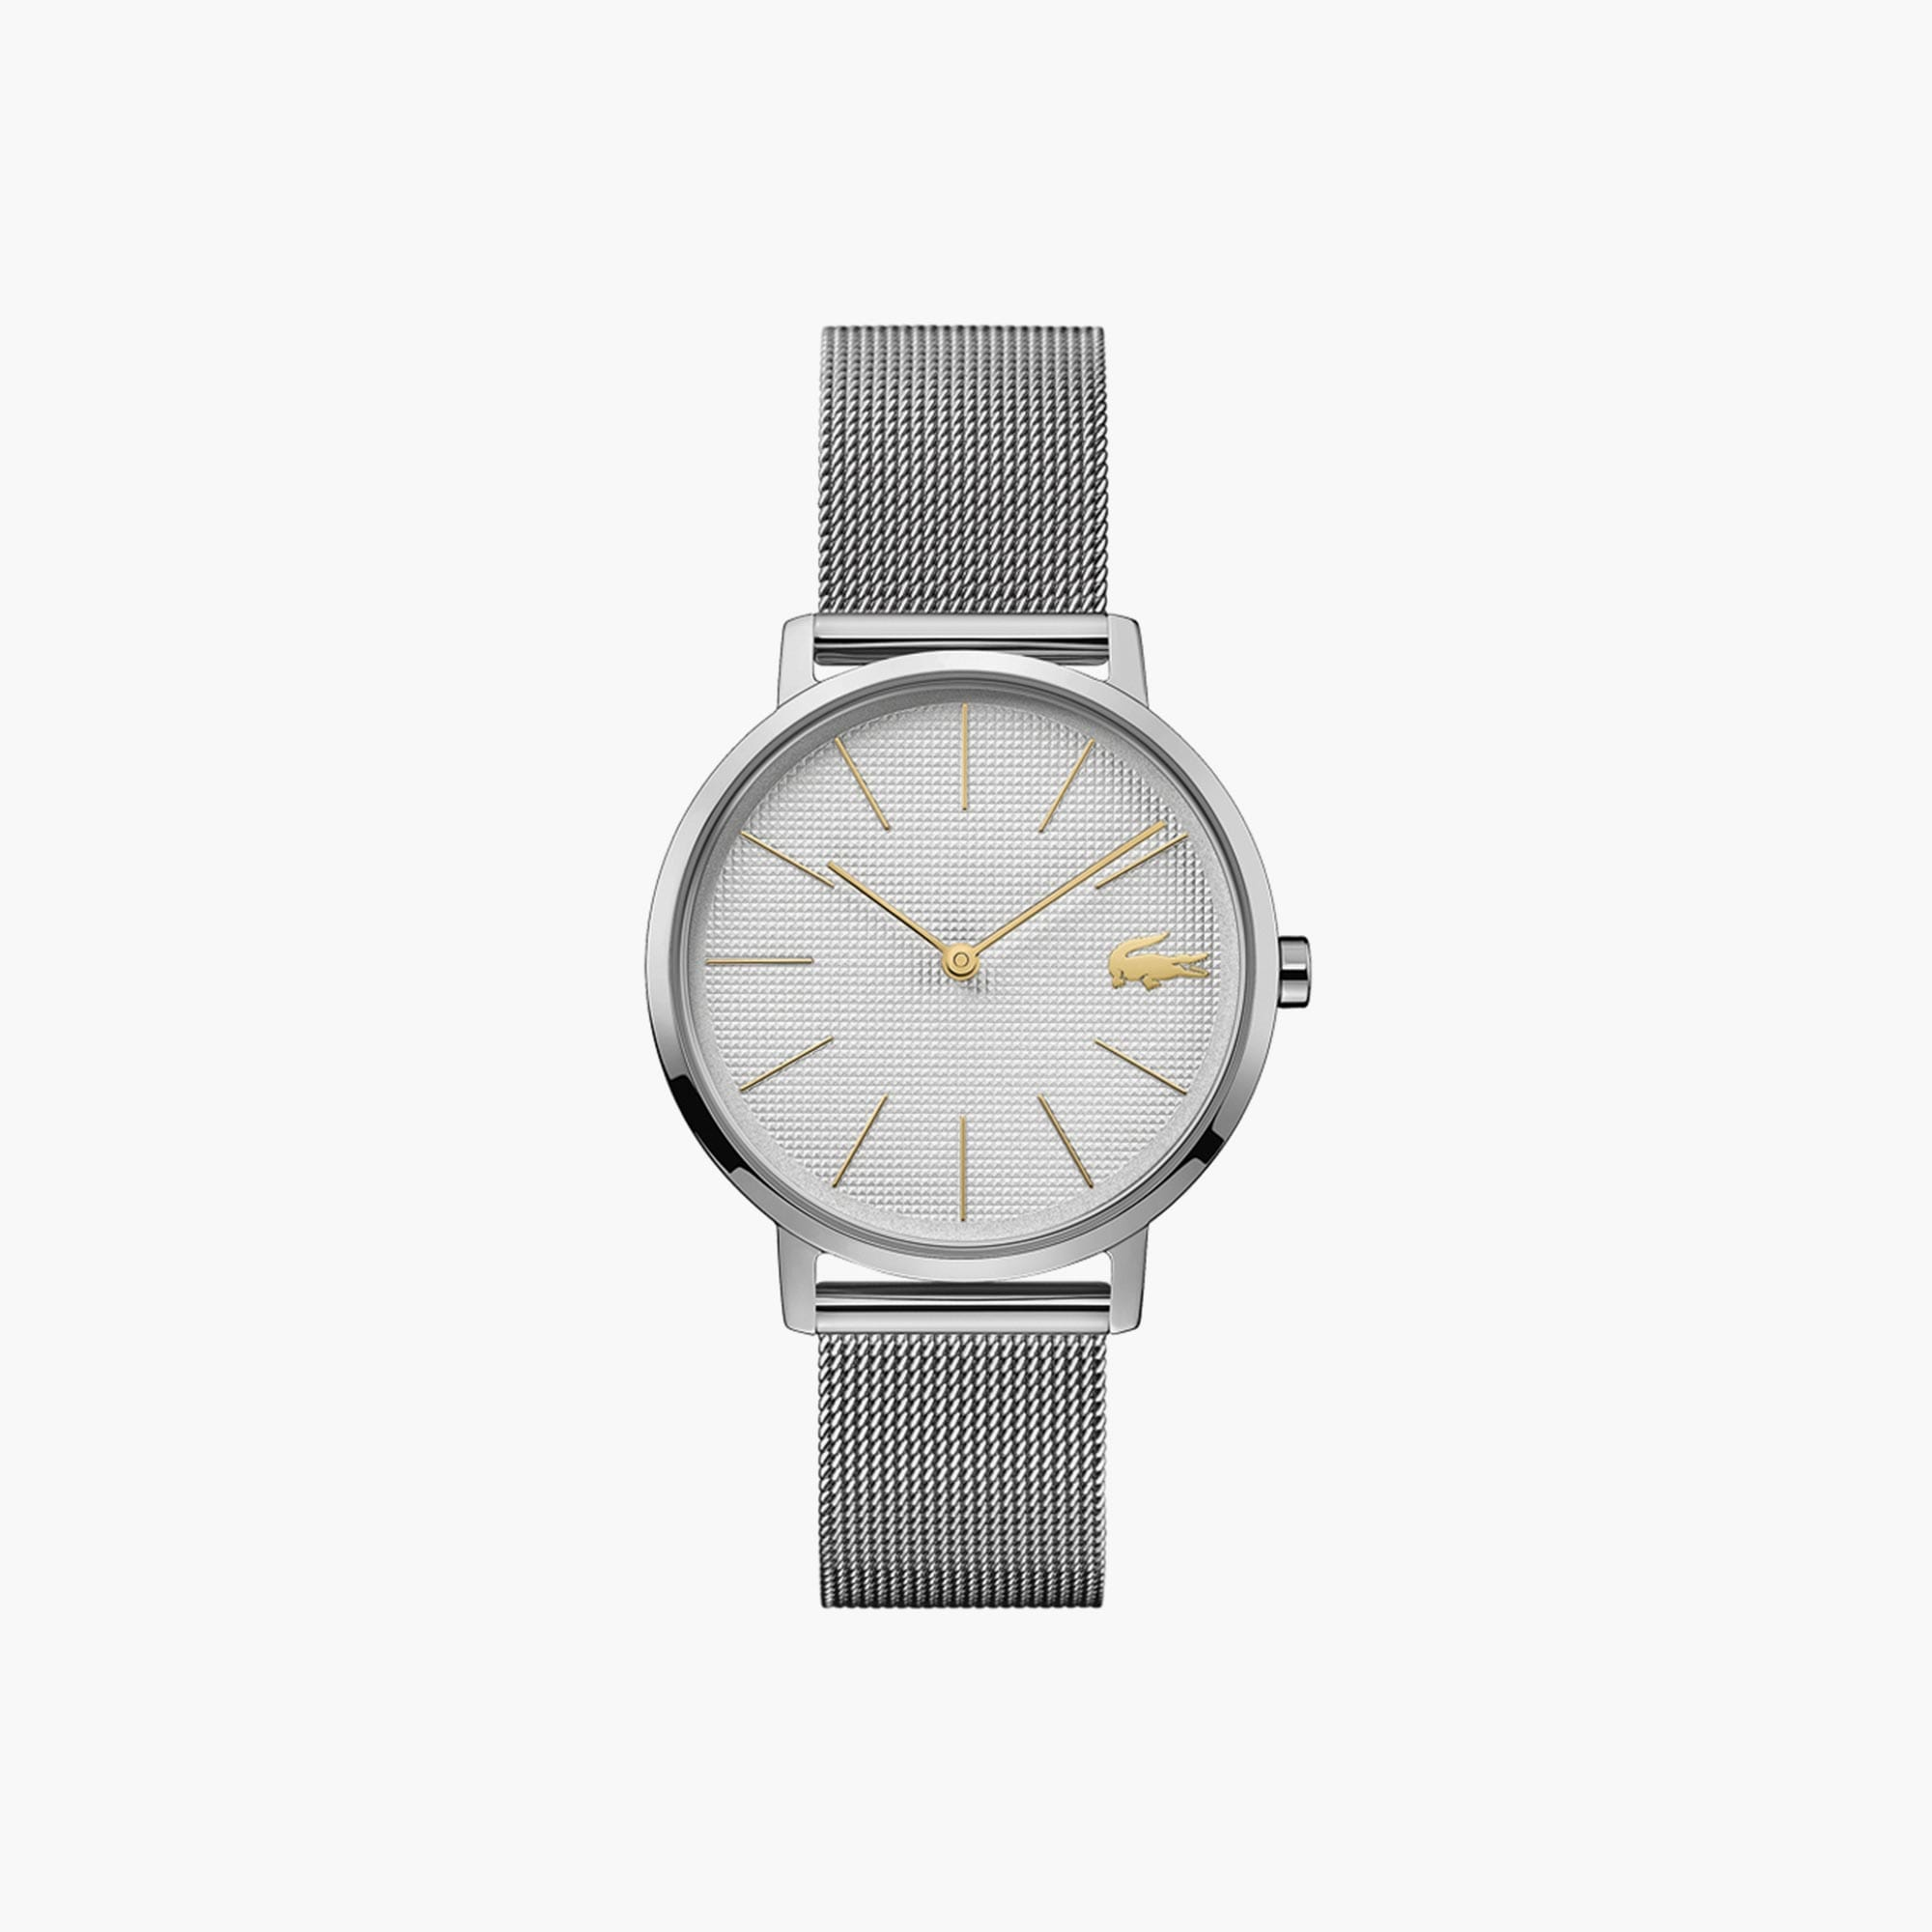 86c4d69e5 Women's Watches | Accessories for Women | LACOSTE